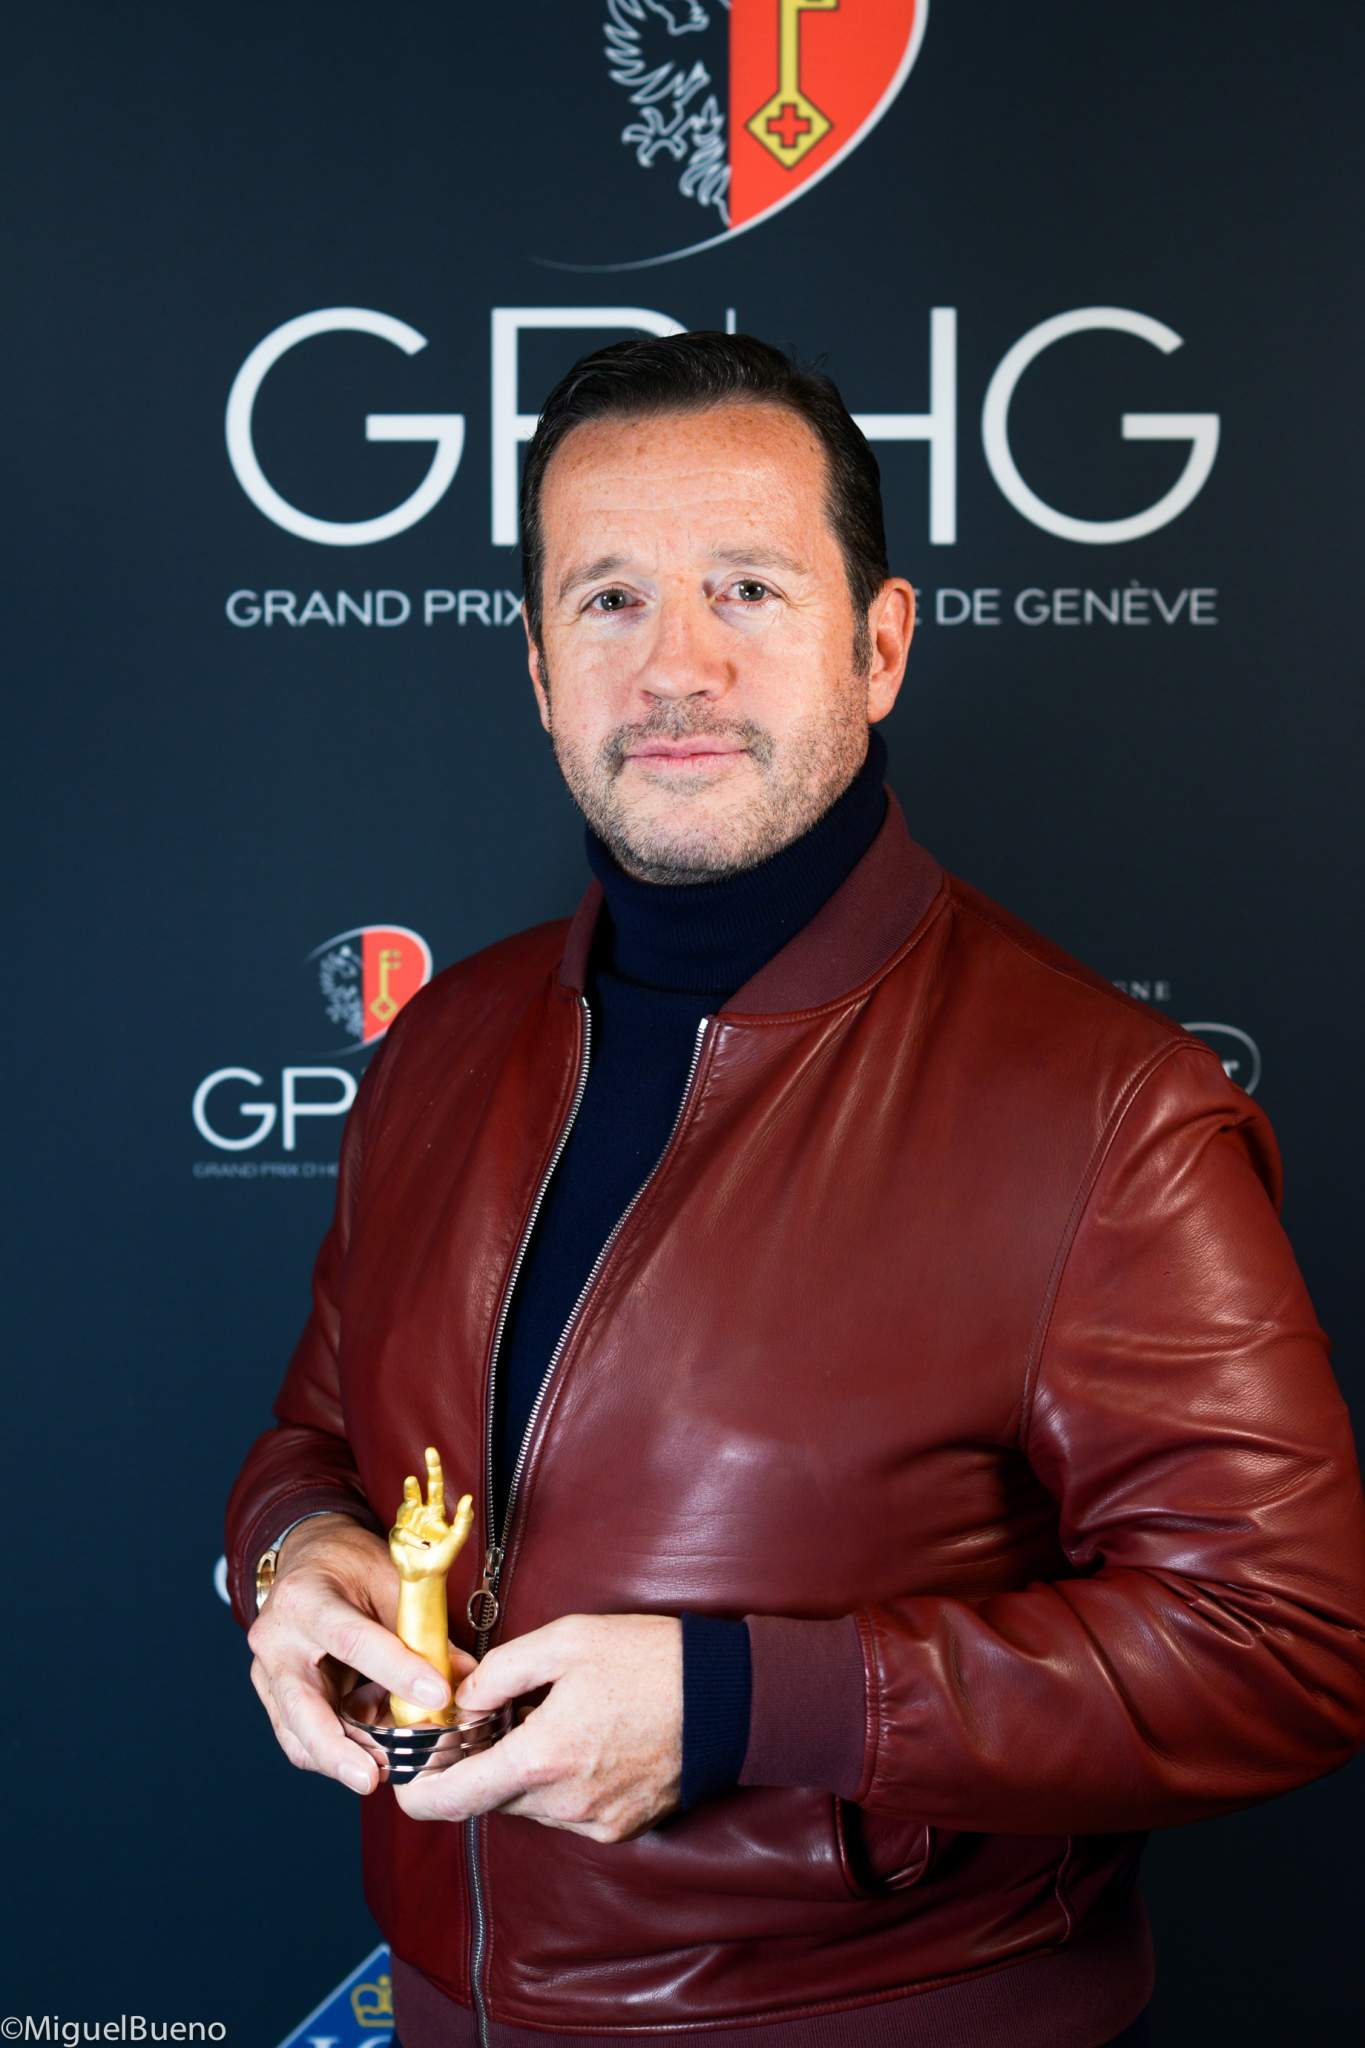 CEO of Audemars Piguet, winner of the Iconic Watch Prize 2019